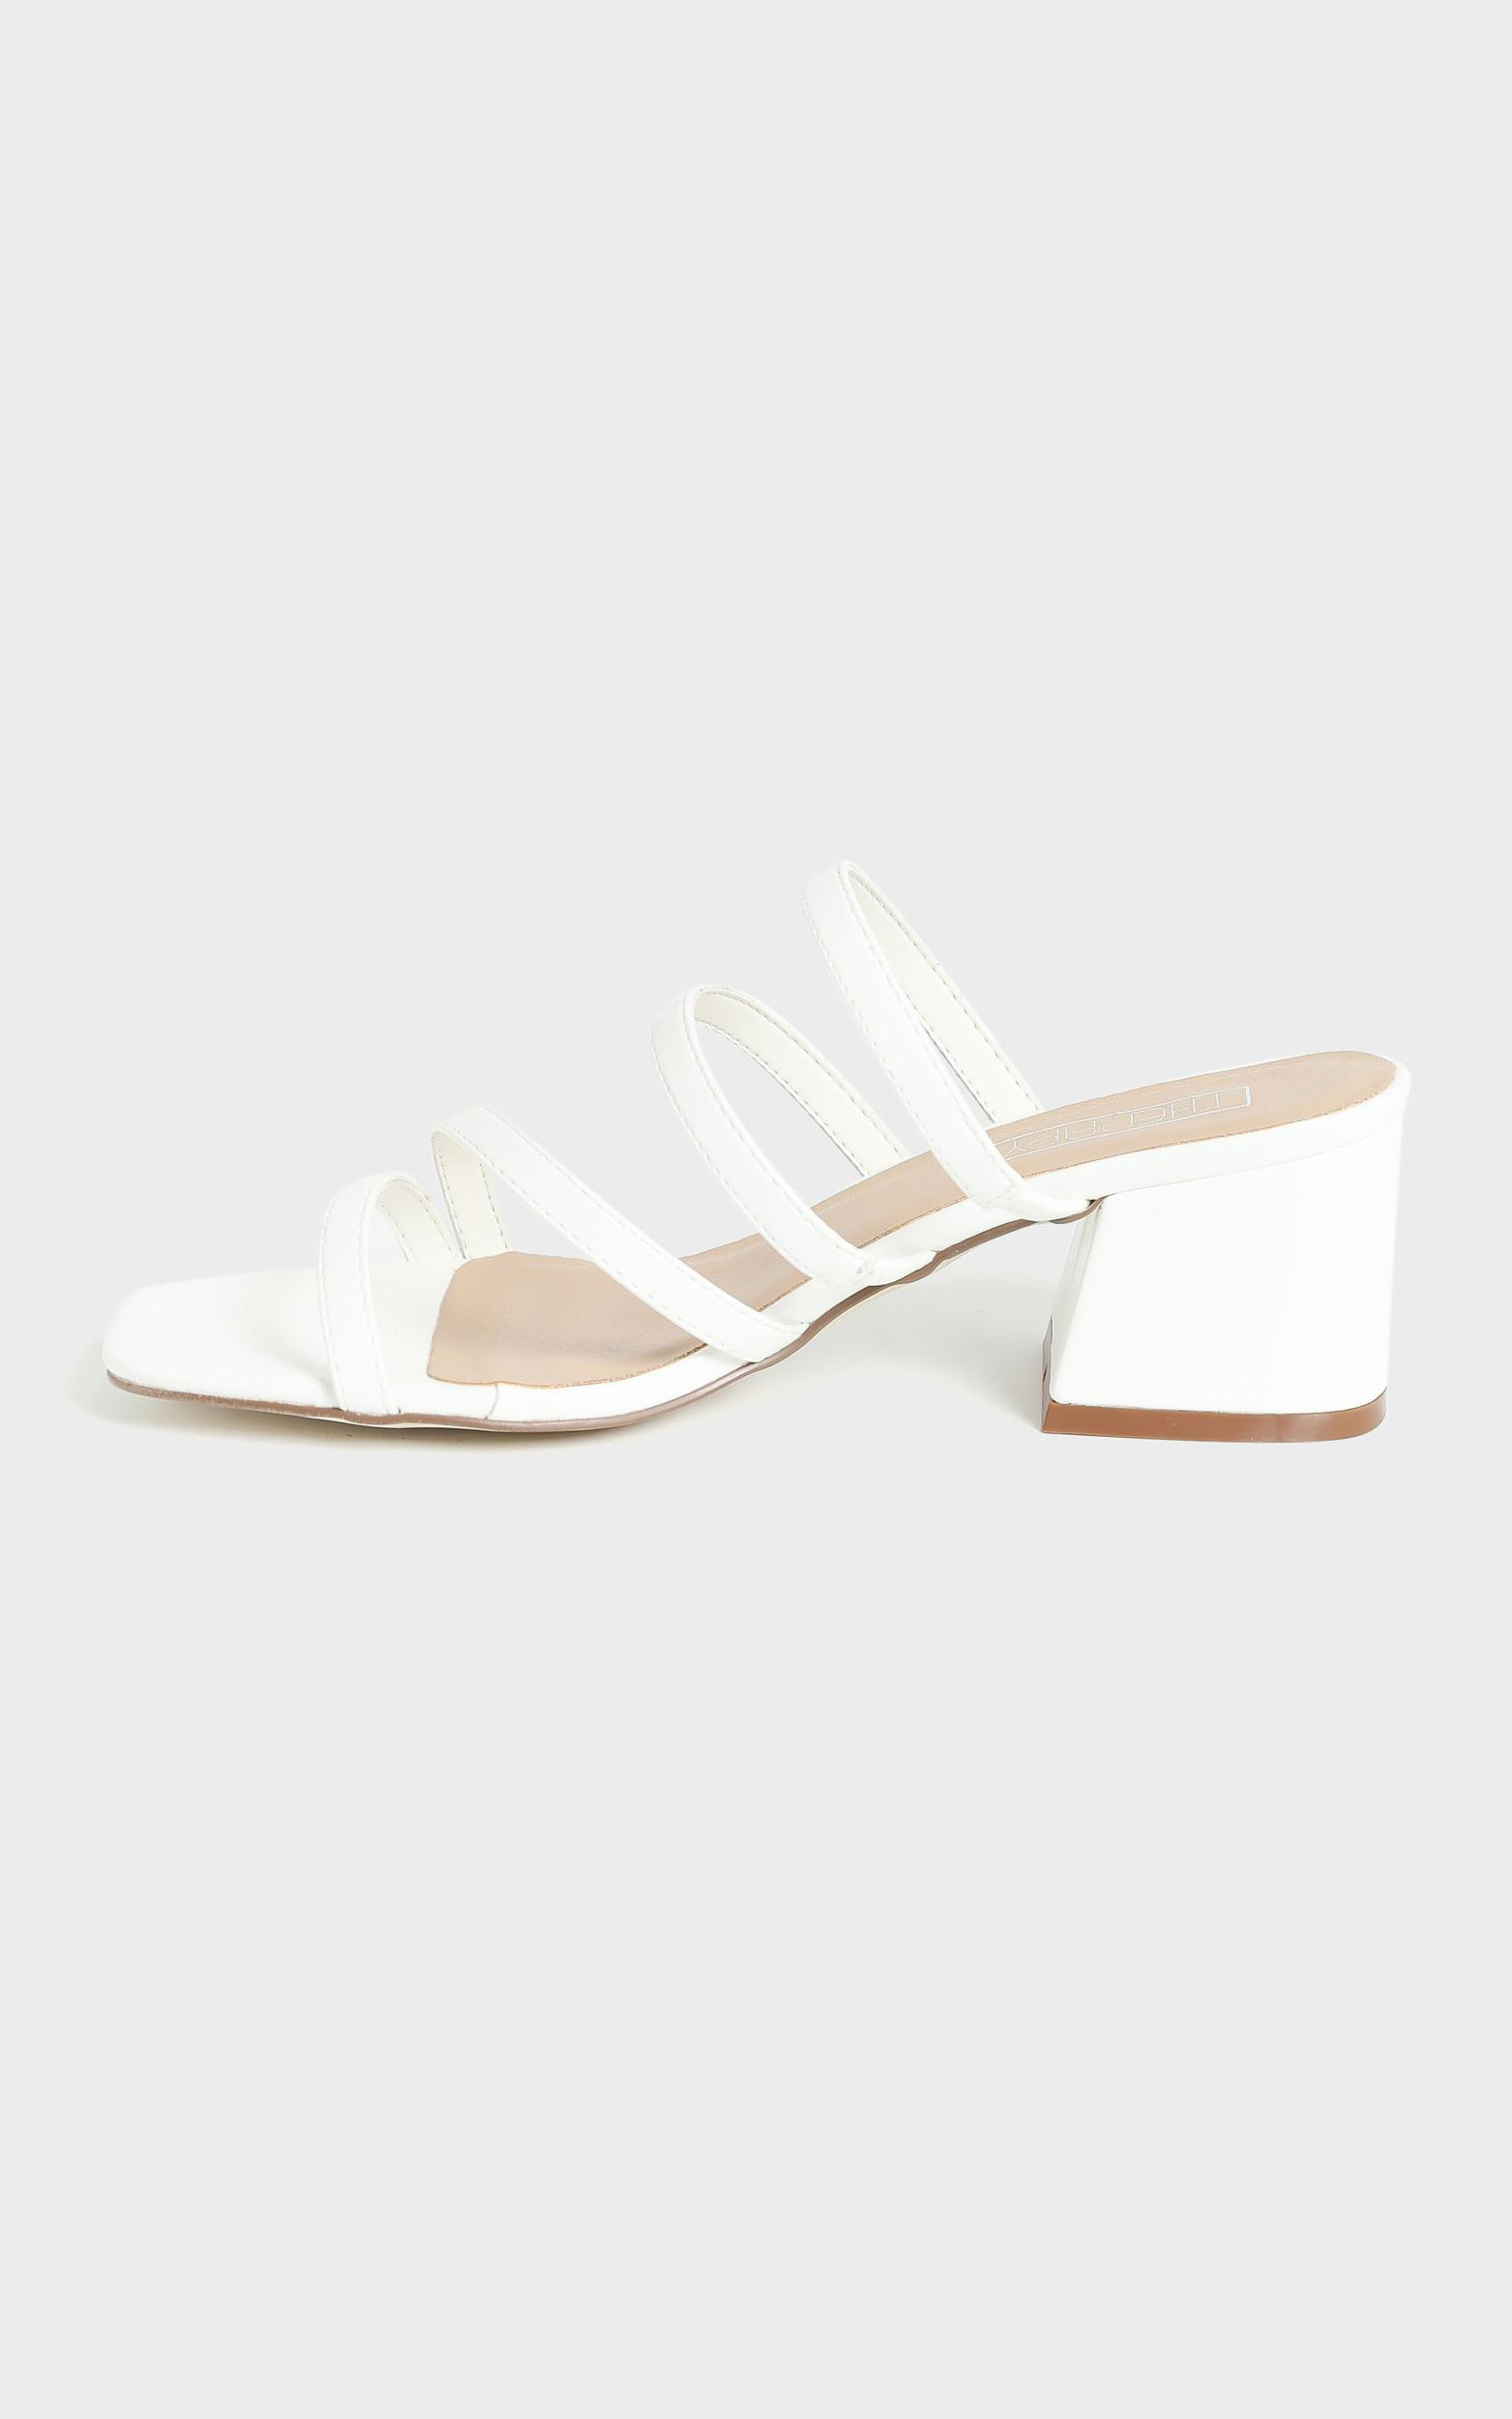 Therapy - Gardeena Heels in White - 5, White, hi-res image number null